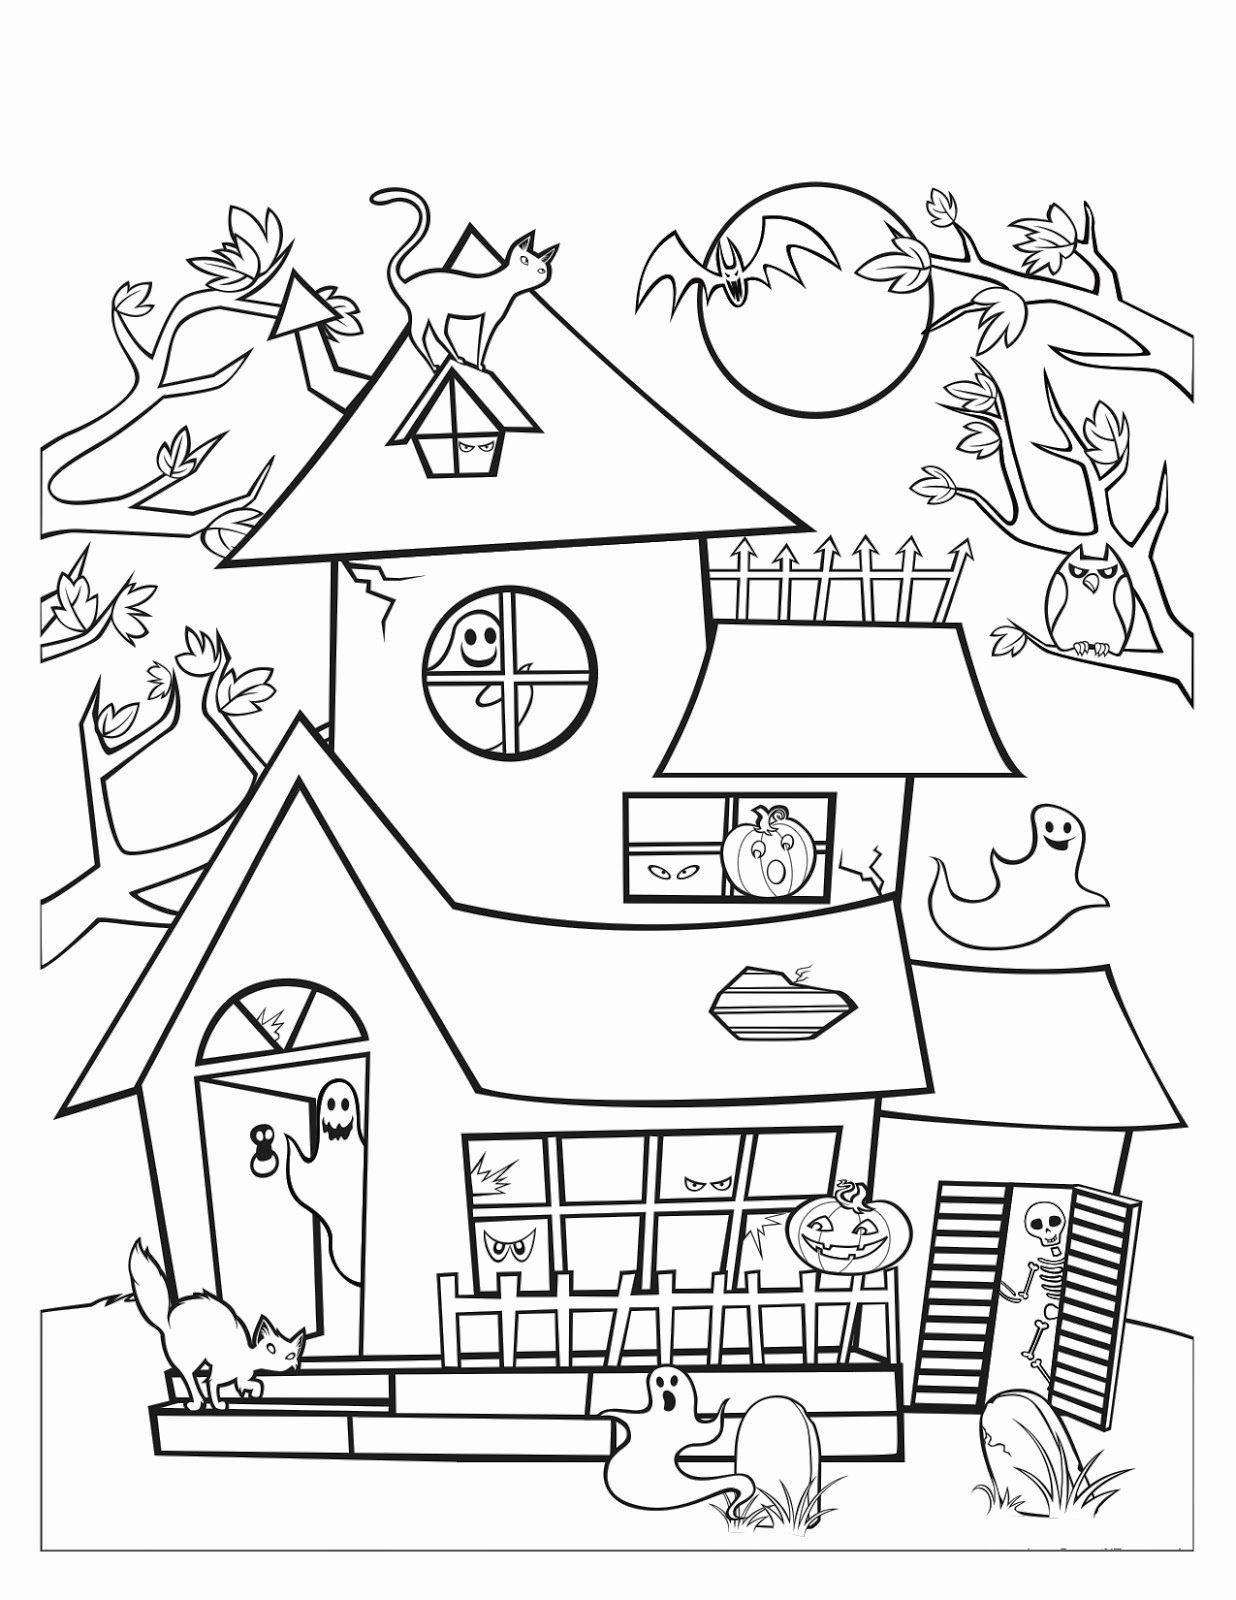 1236x1600 Free Printable Halloween Coloring Pages For Older Kids Fresh